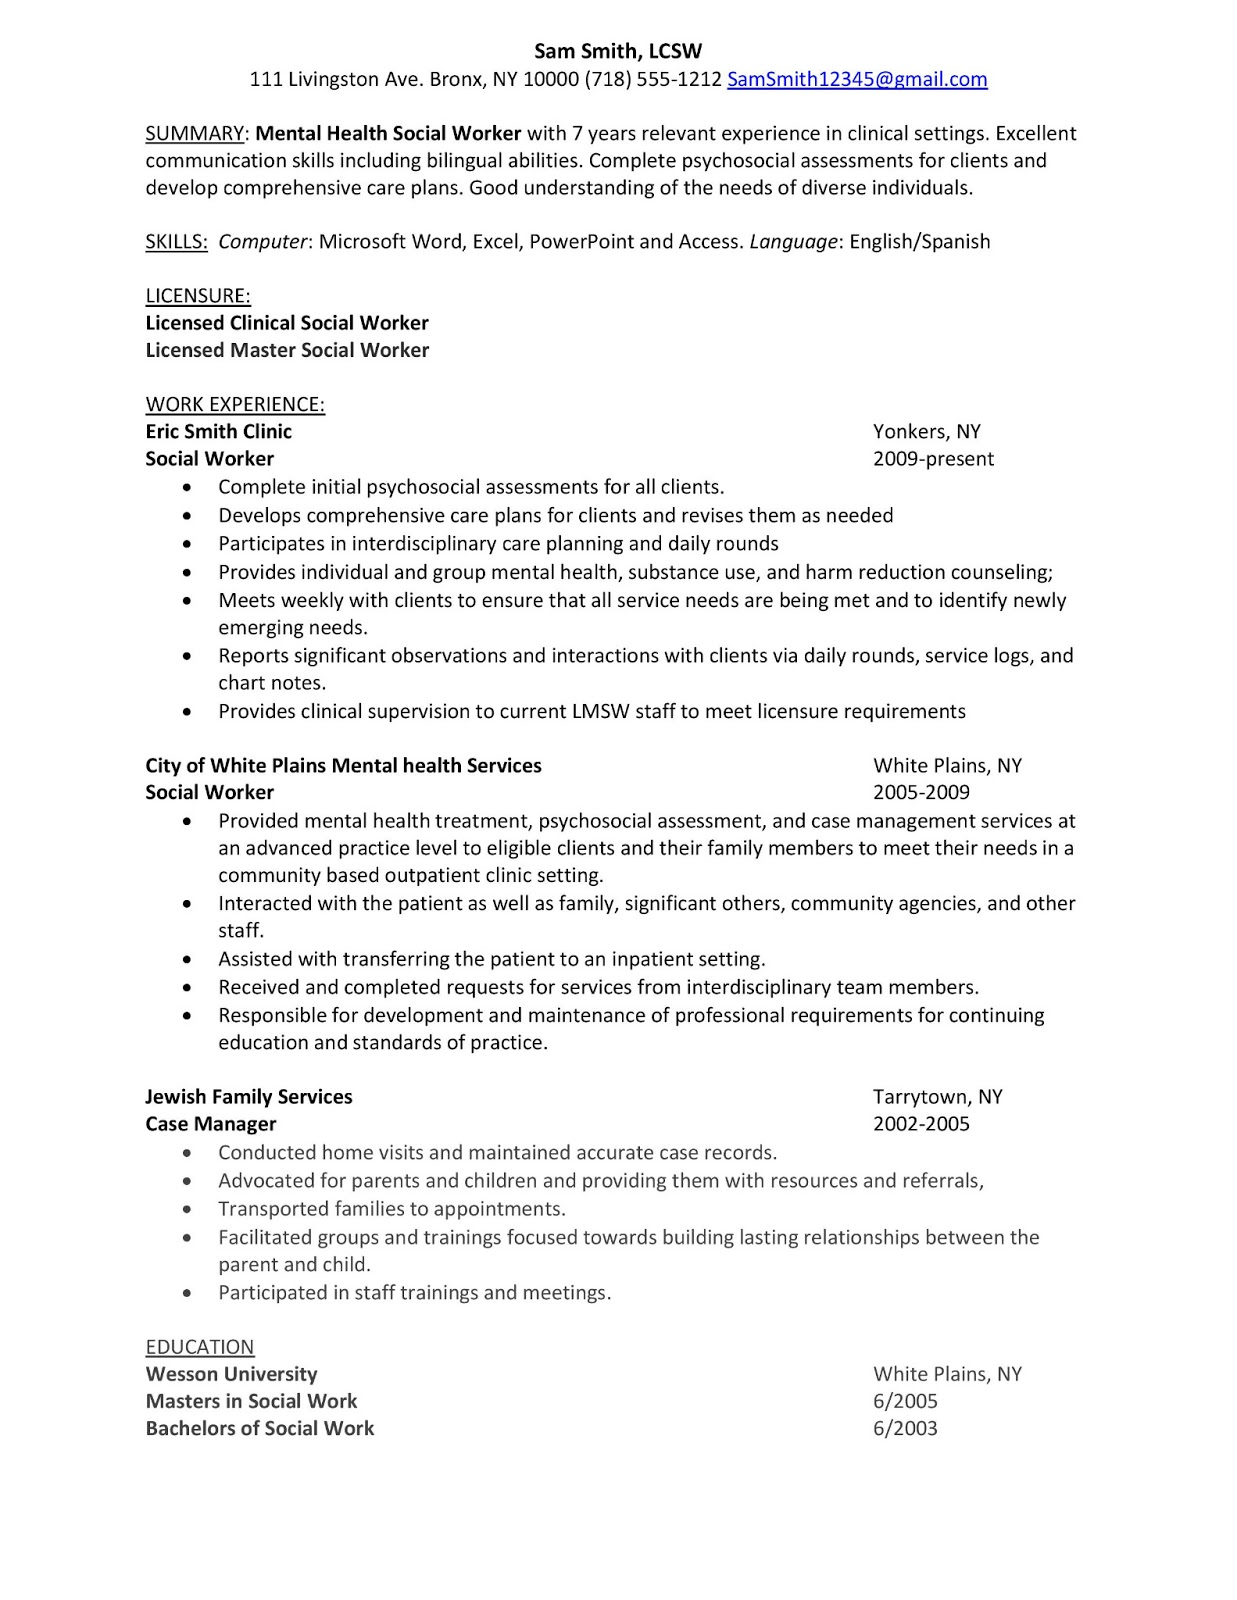 Case management resume to inspire you how to create a good resume